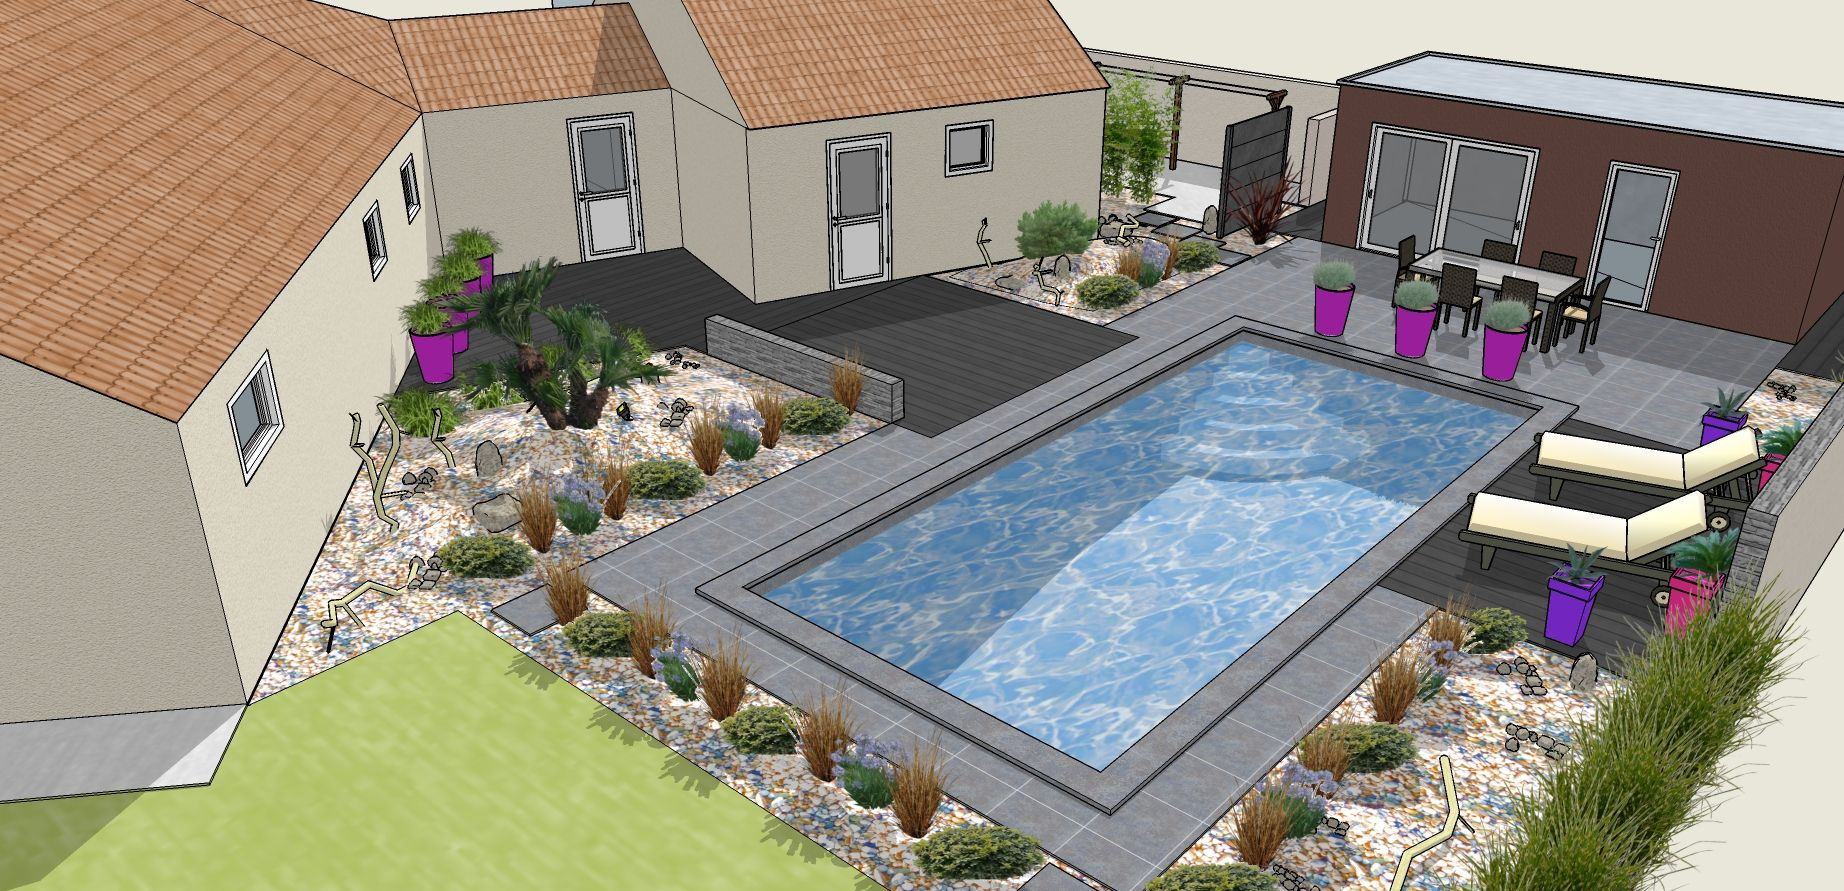 Am nagement paysager piscine creus e contemporain - Amenagement bord piscine ...